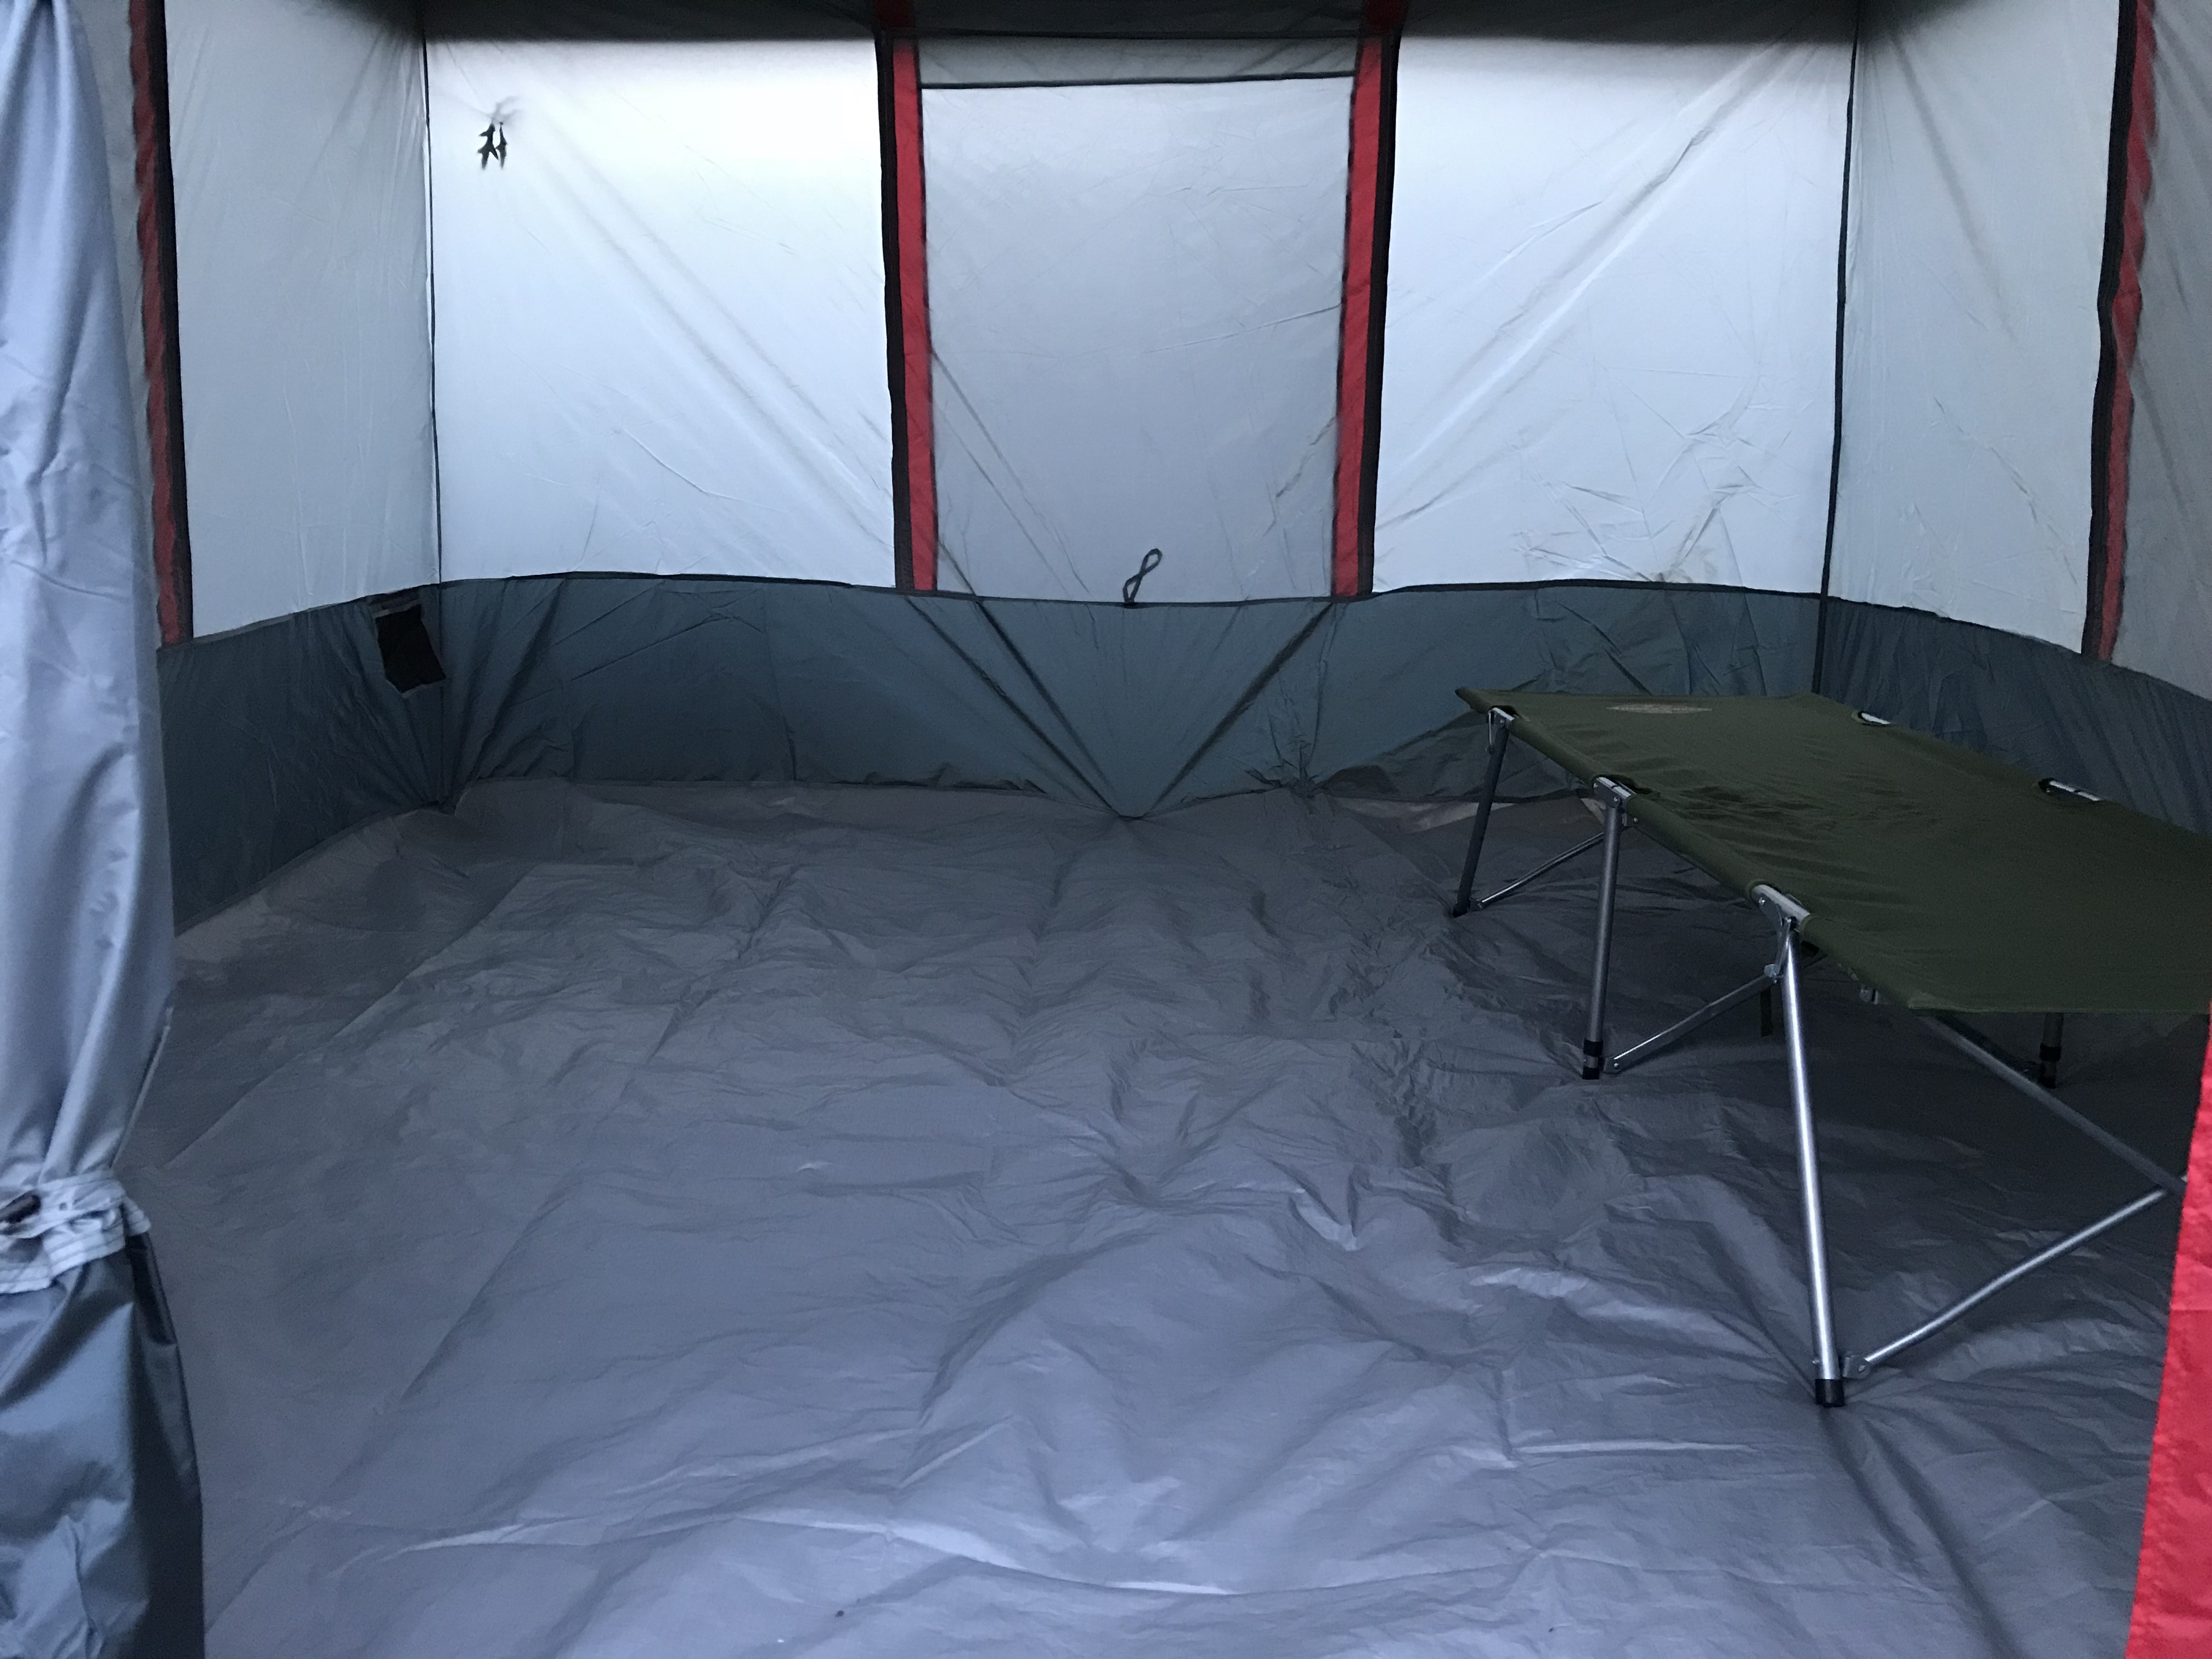 The inside of the tent is huge. I set up my c&ing cot just to get a feel for the interior space. Love the spaciousness of this tent. & Tents u2013 Explore Texas